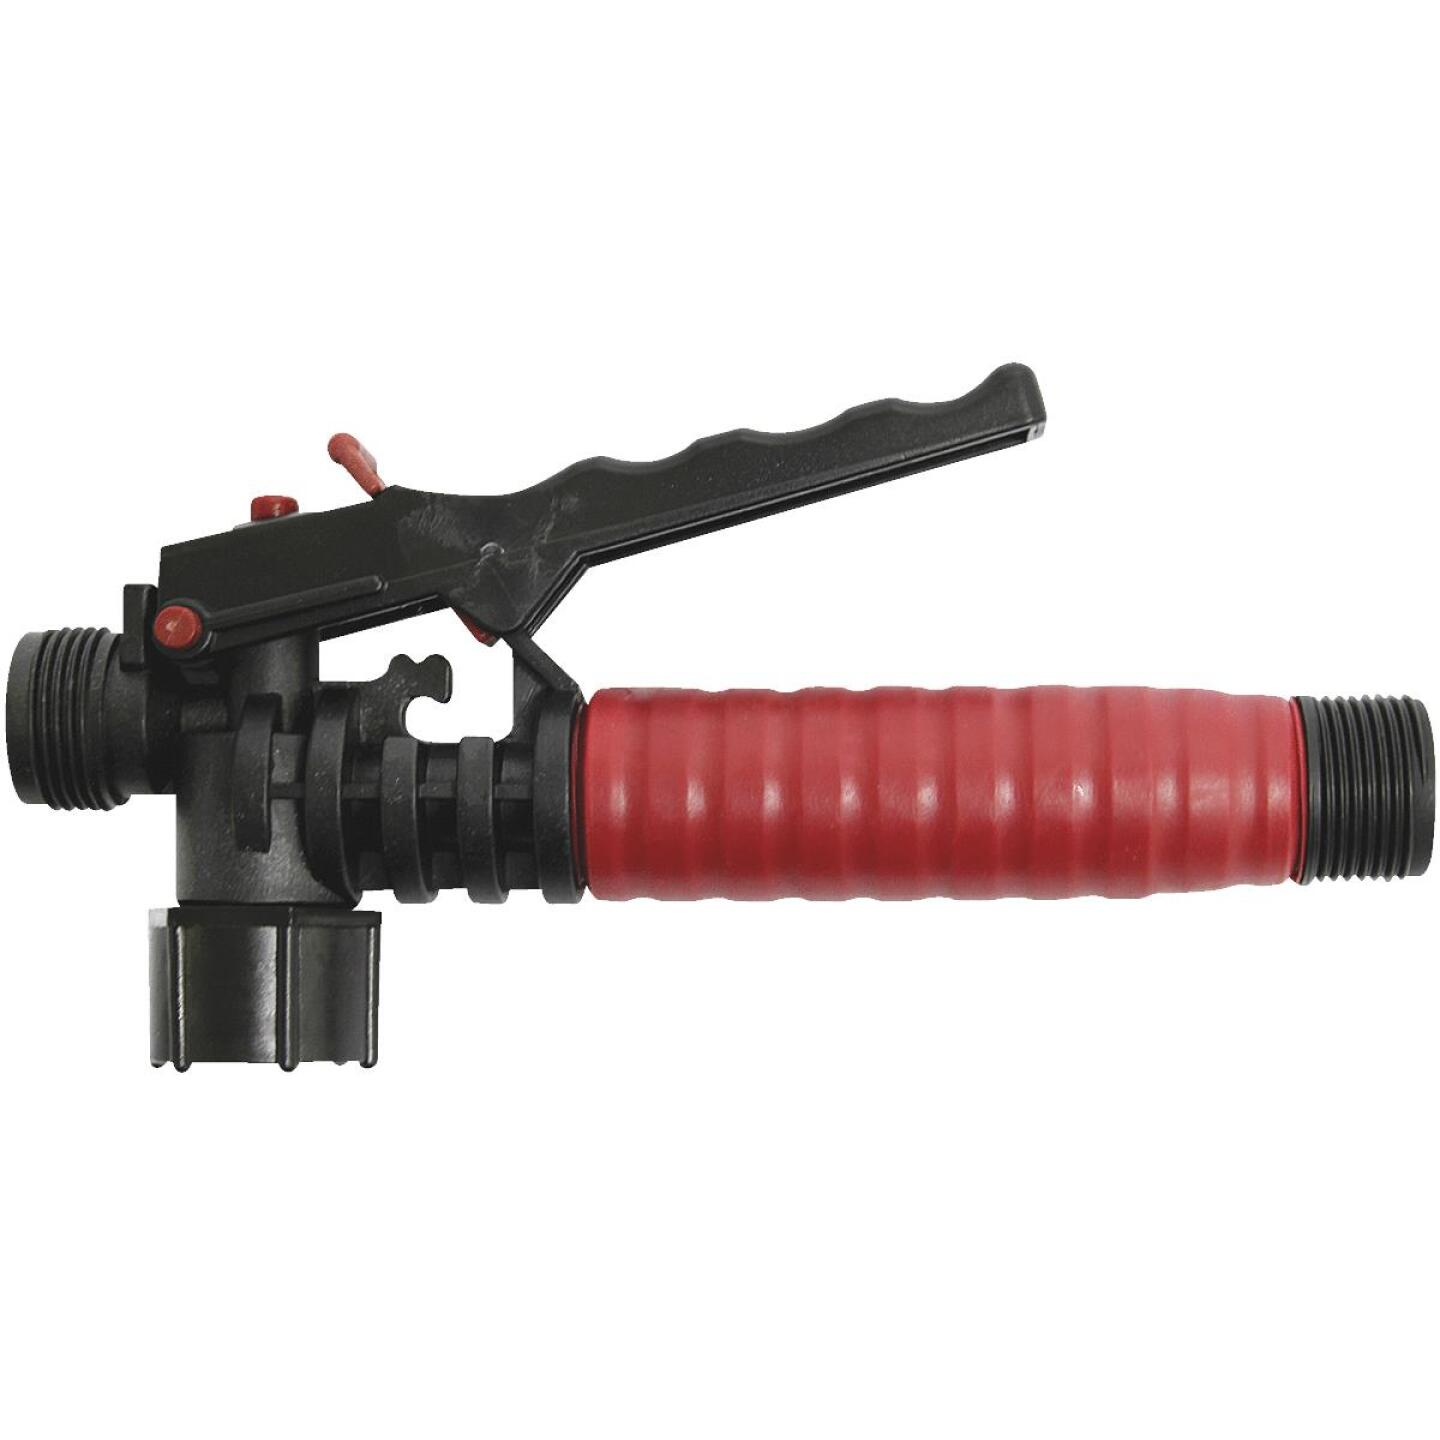 Chapin Replacement Sprayer Shutoff Assembly Image 1